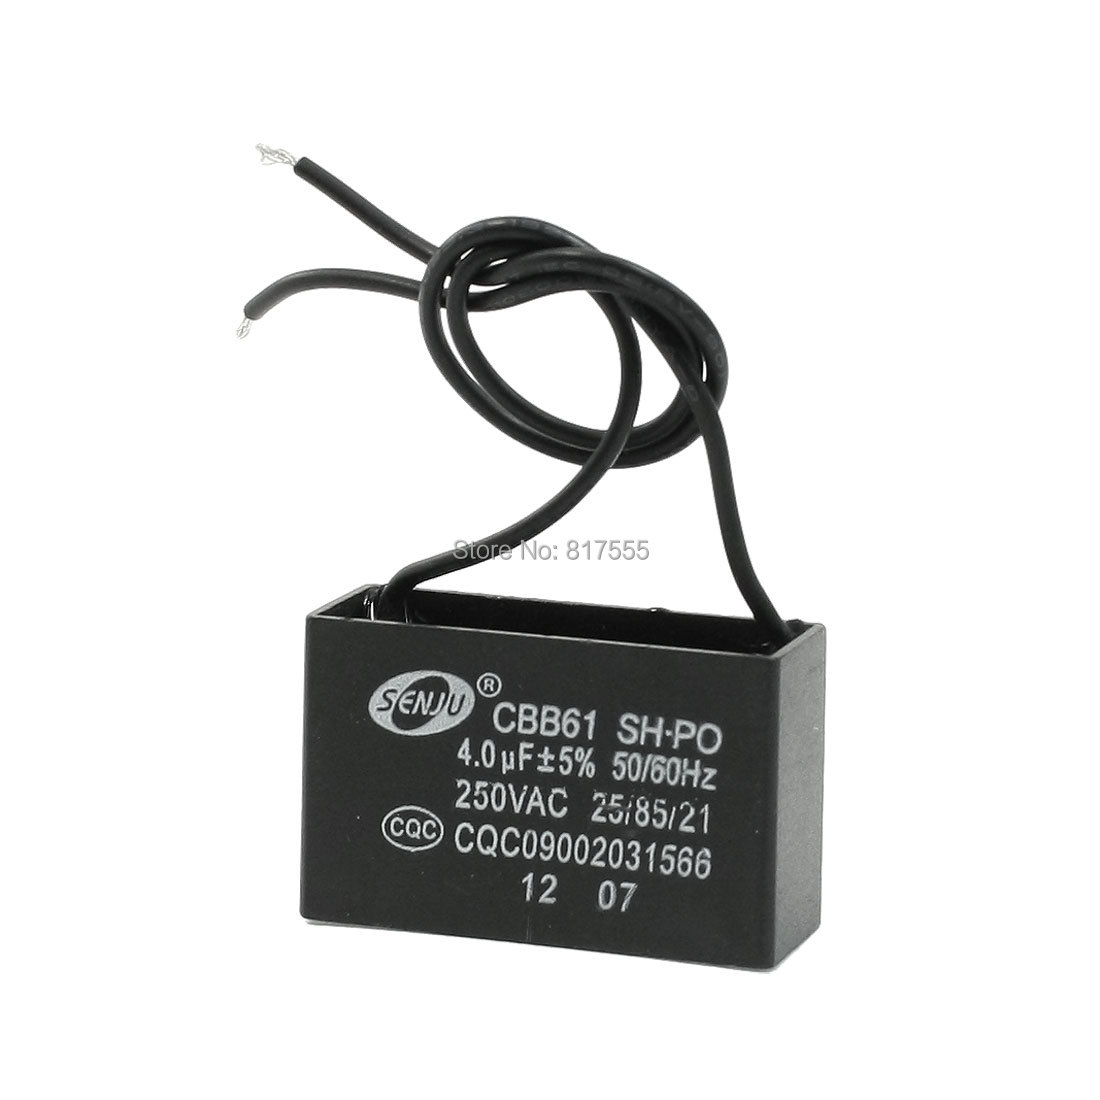 4uf Capacitor Reviews Online Shopping 4uf Capacitor